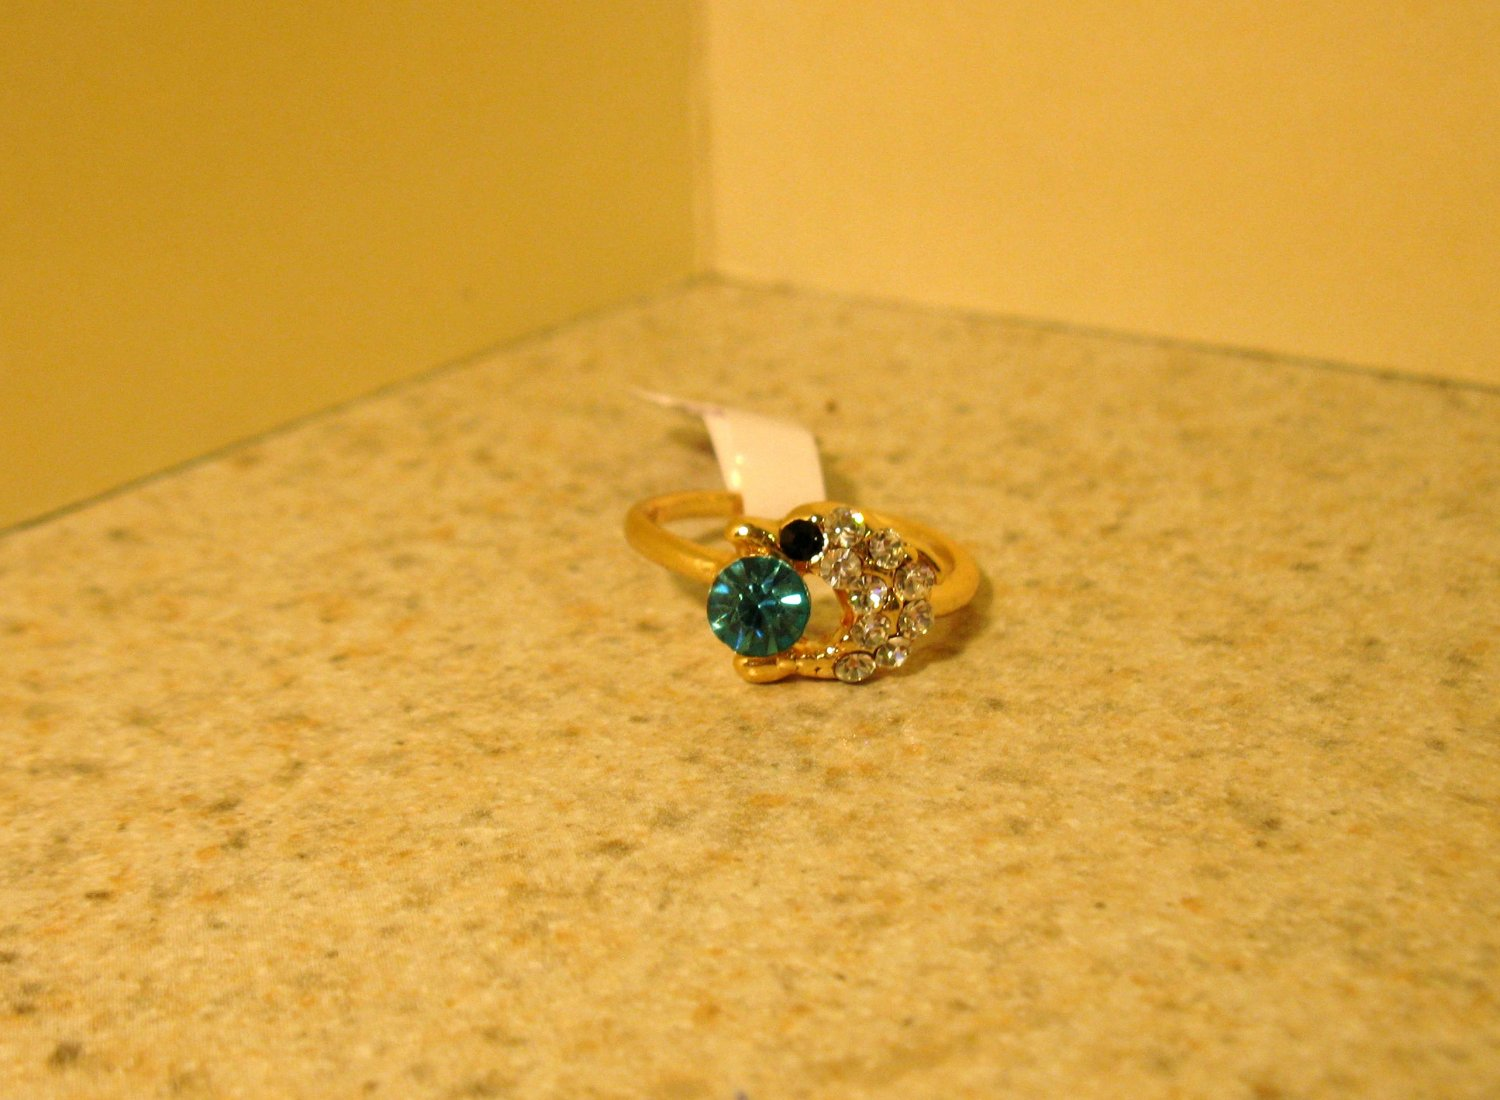 Ring Beautiful Blue & White Topaz Dolphin Design Size 6 New! #215